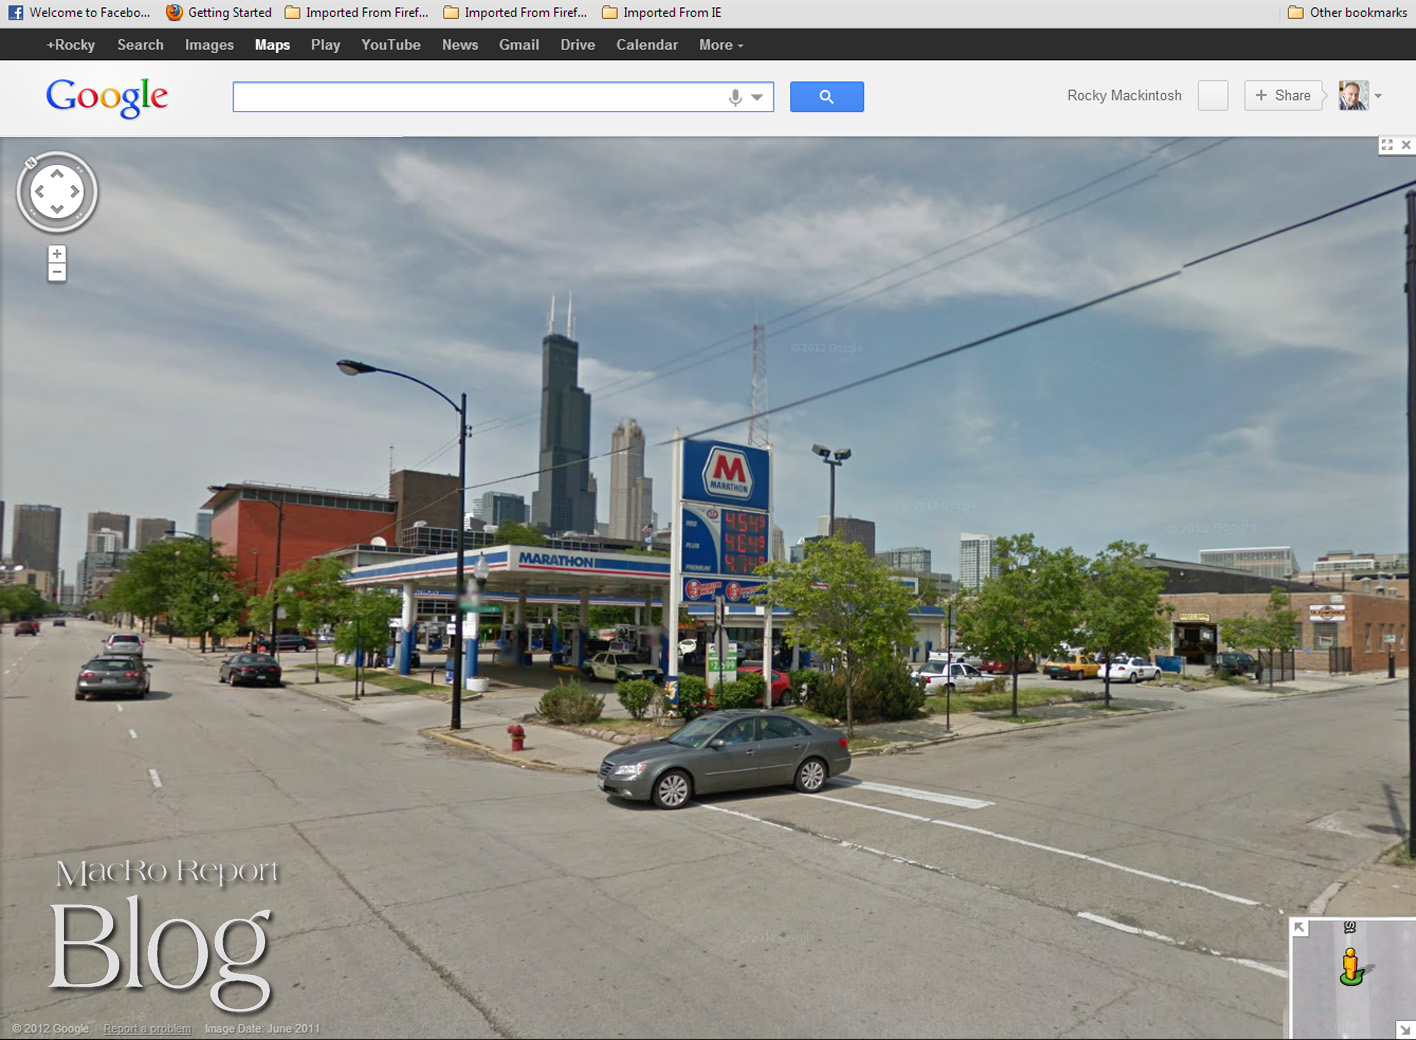 Tracking my Missing iPad street view - N Jefferson and W Grenshaw